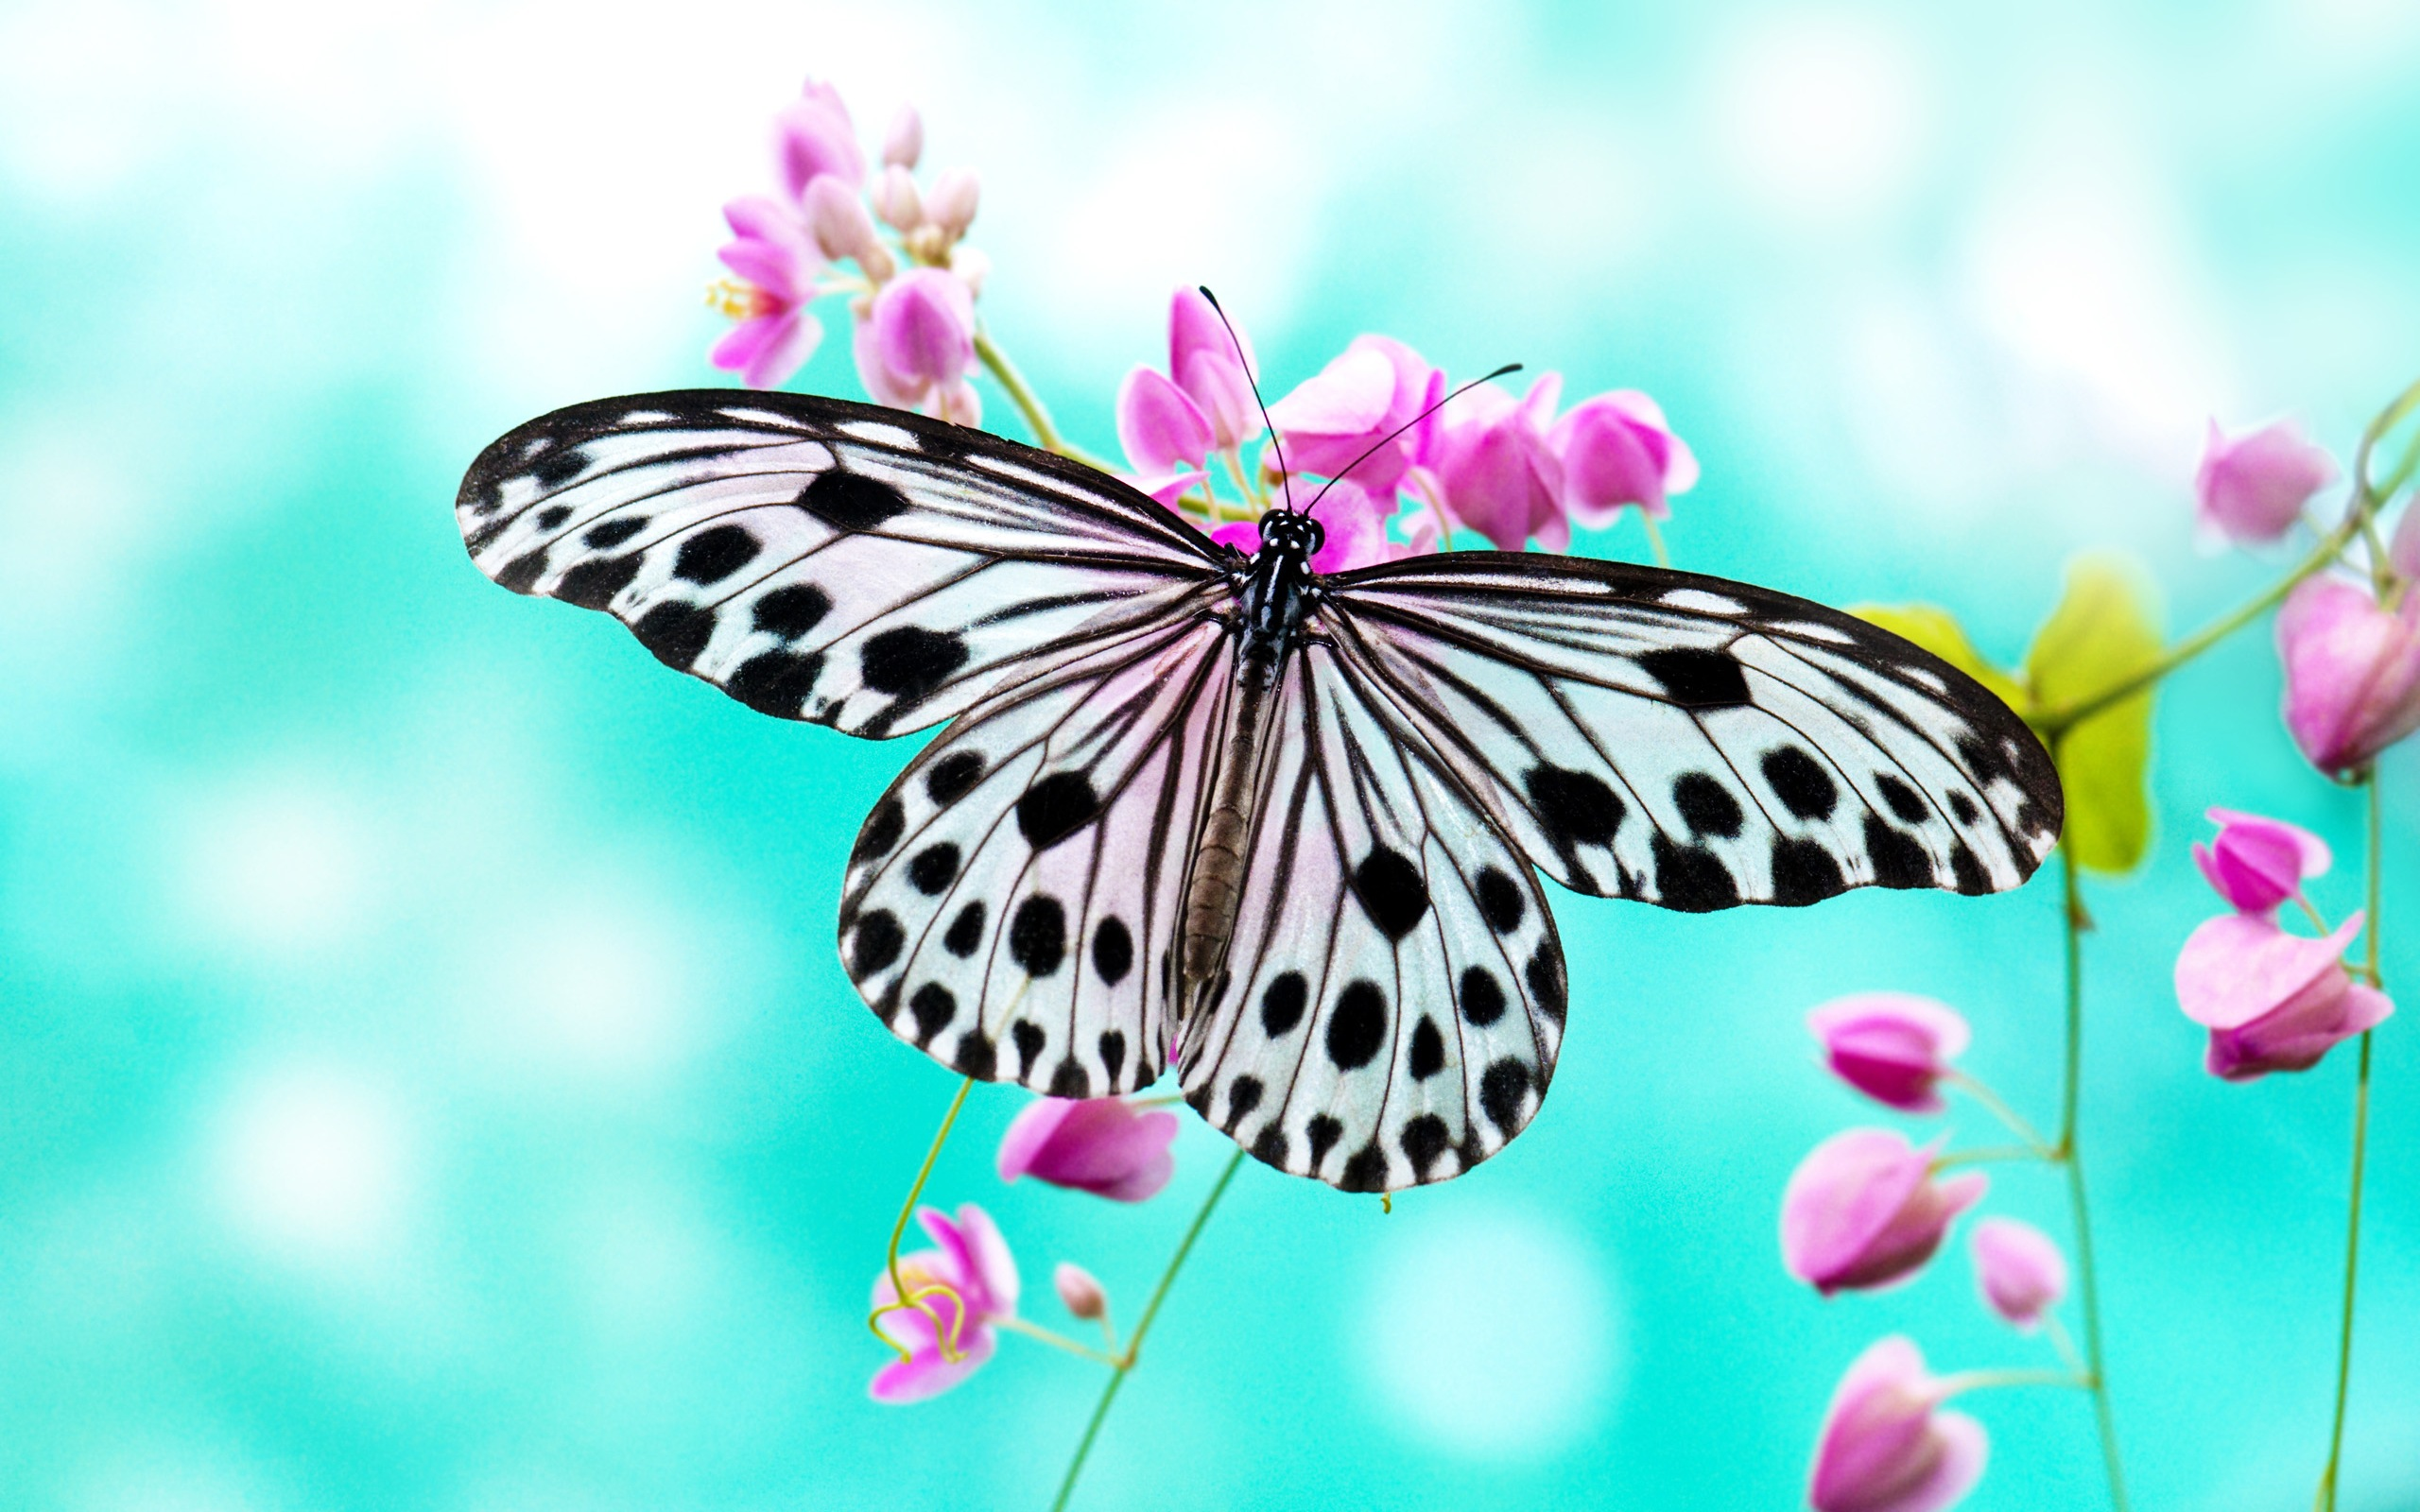 Cool Butterfly Wallpaper Free